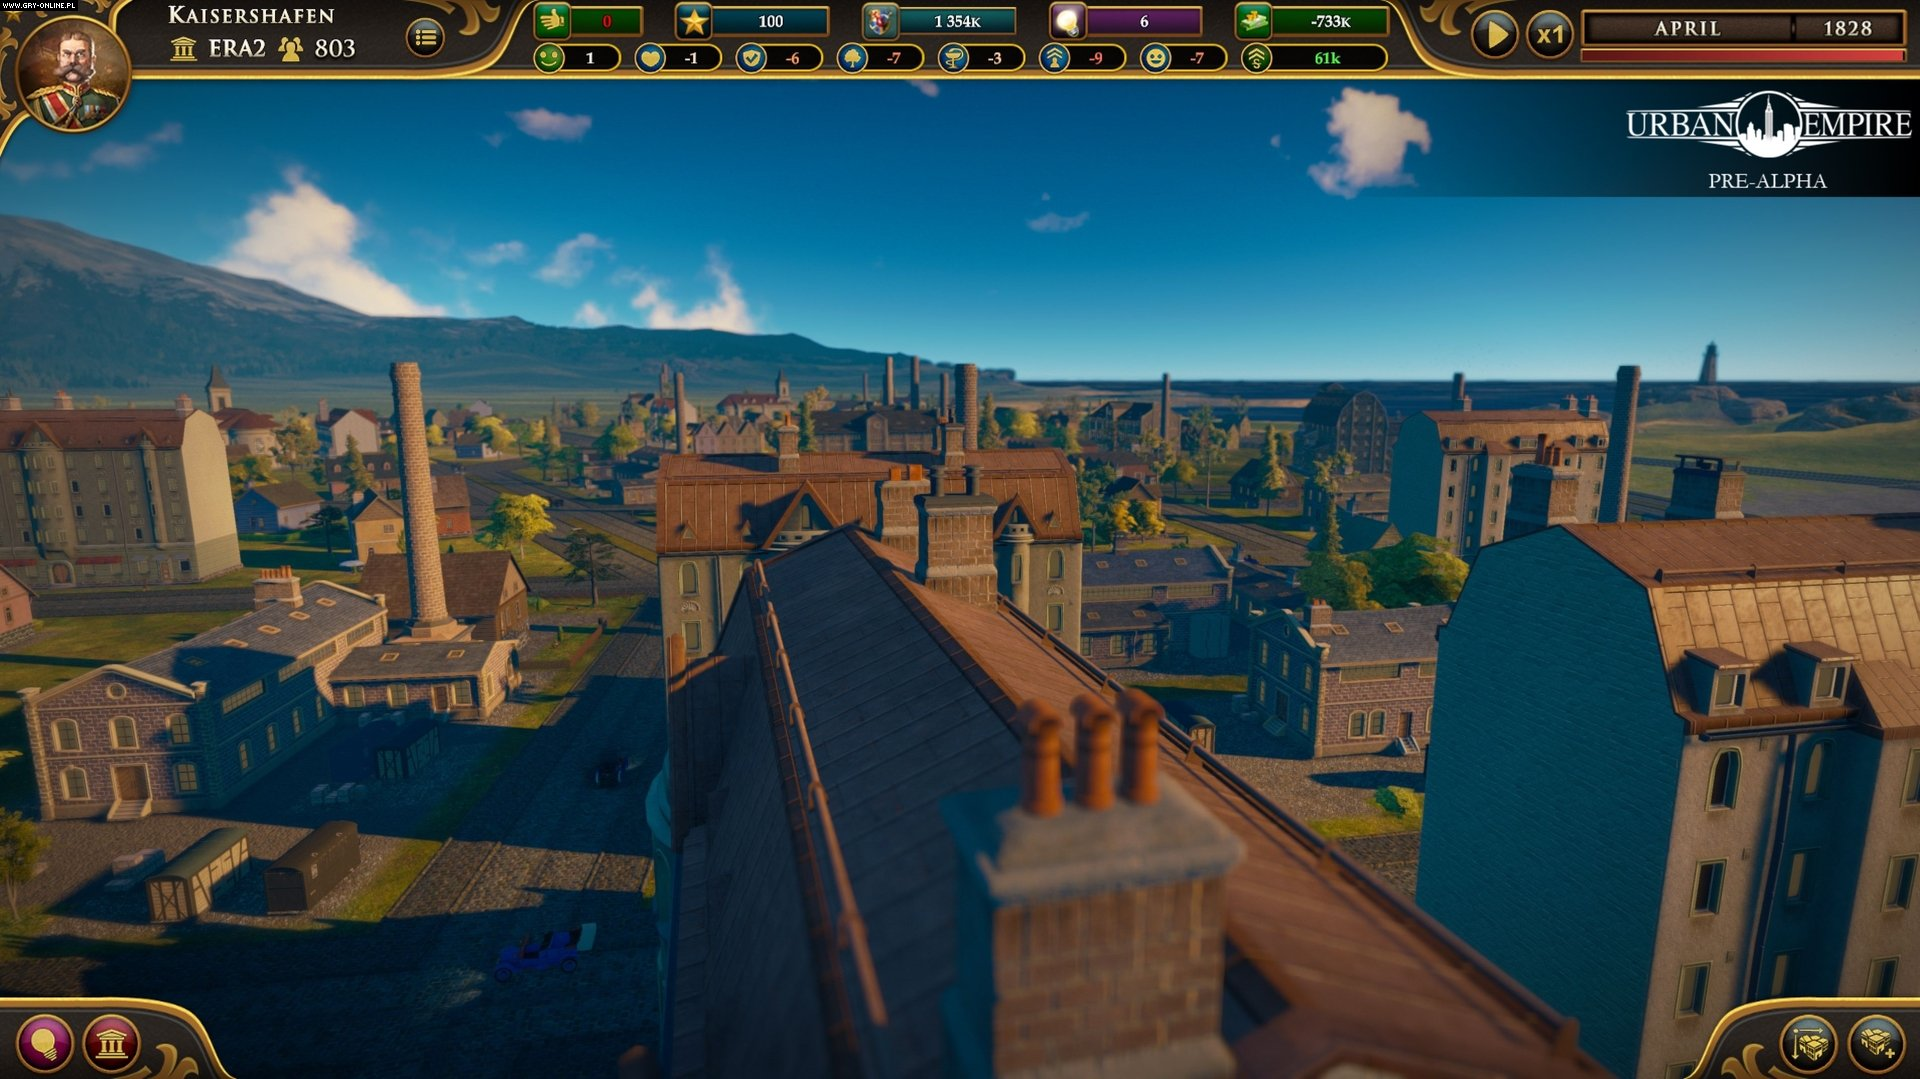 Urban Empire PC Gry Screen 4/6, Reborn Games, Kalypso Media